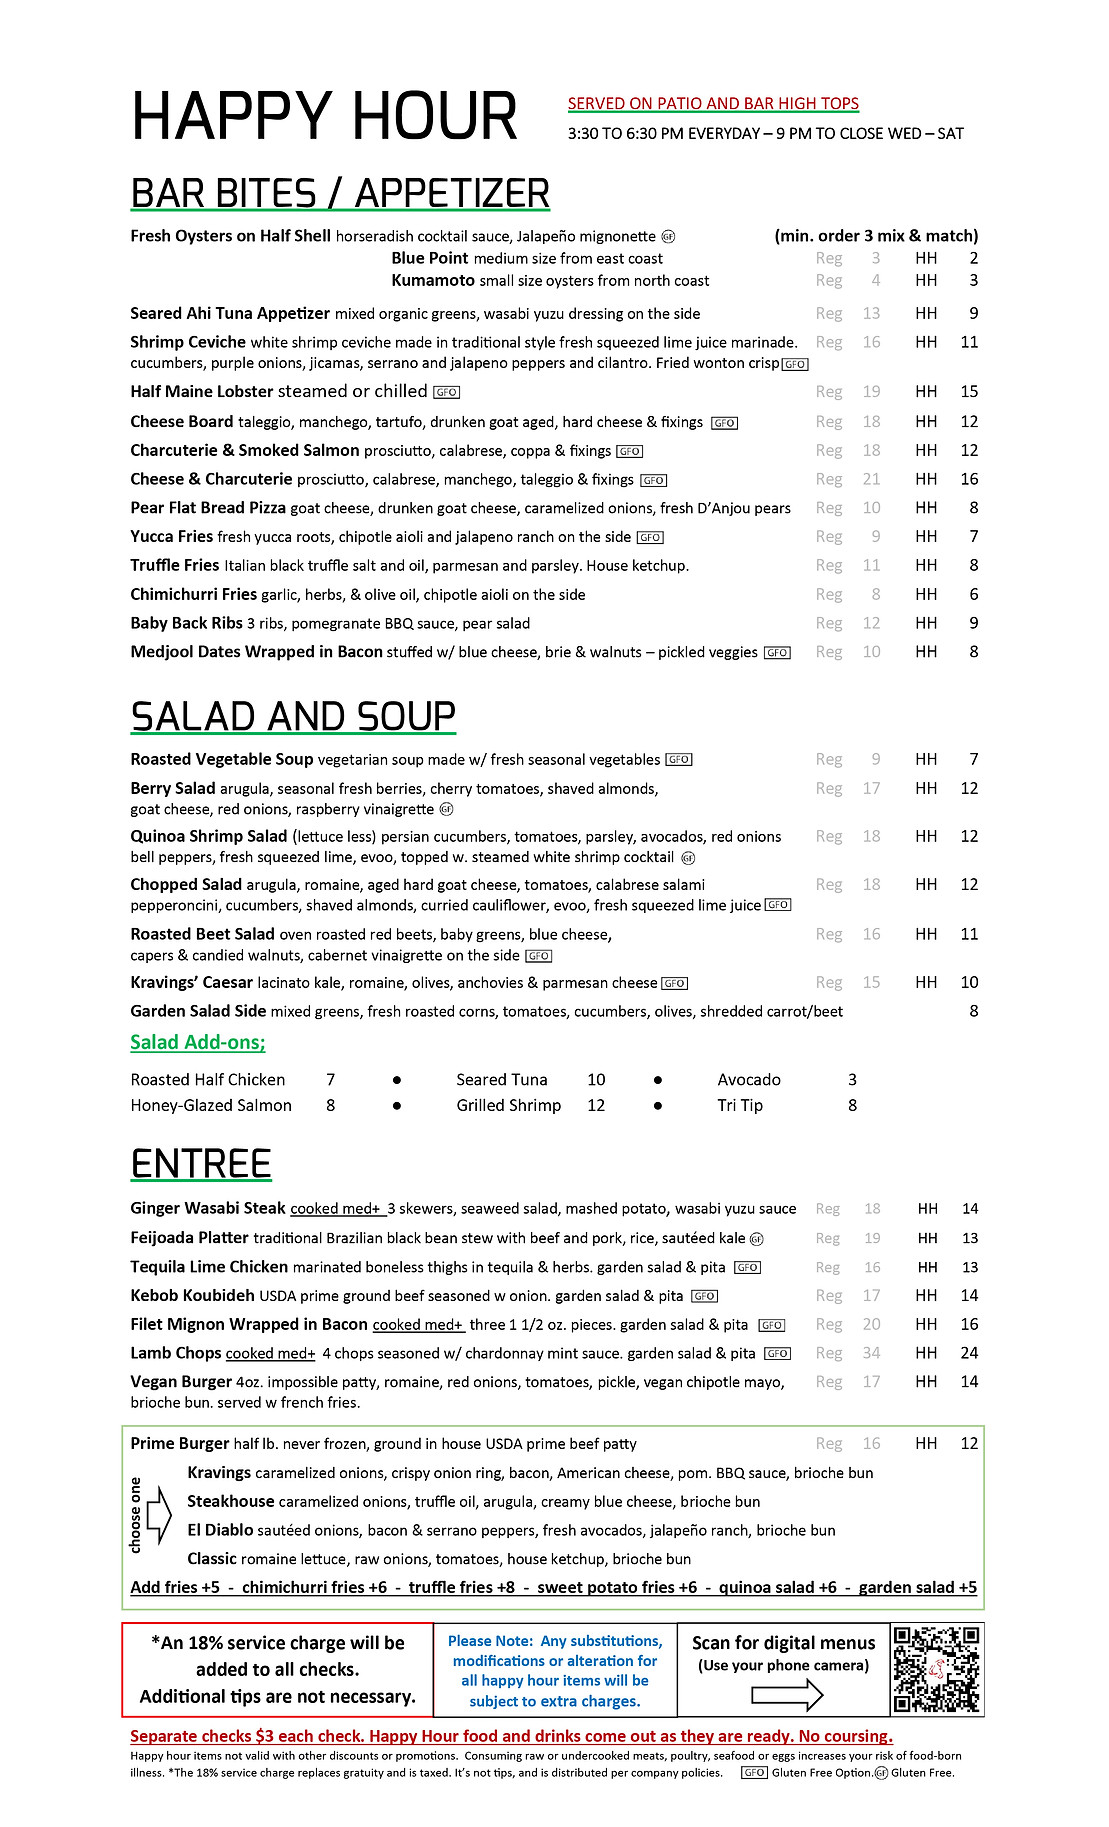 Happy Hour Menu V.10.20 PAGE 2-01.jpg